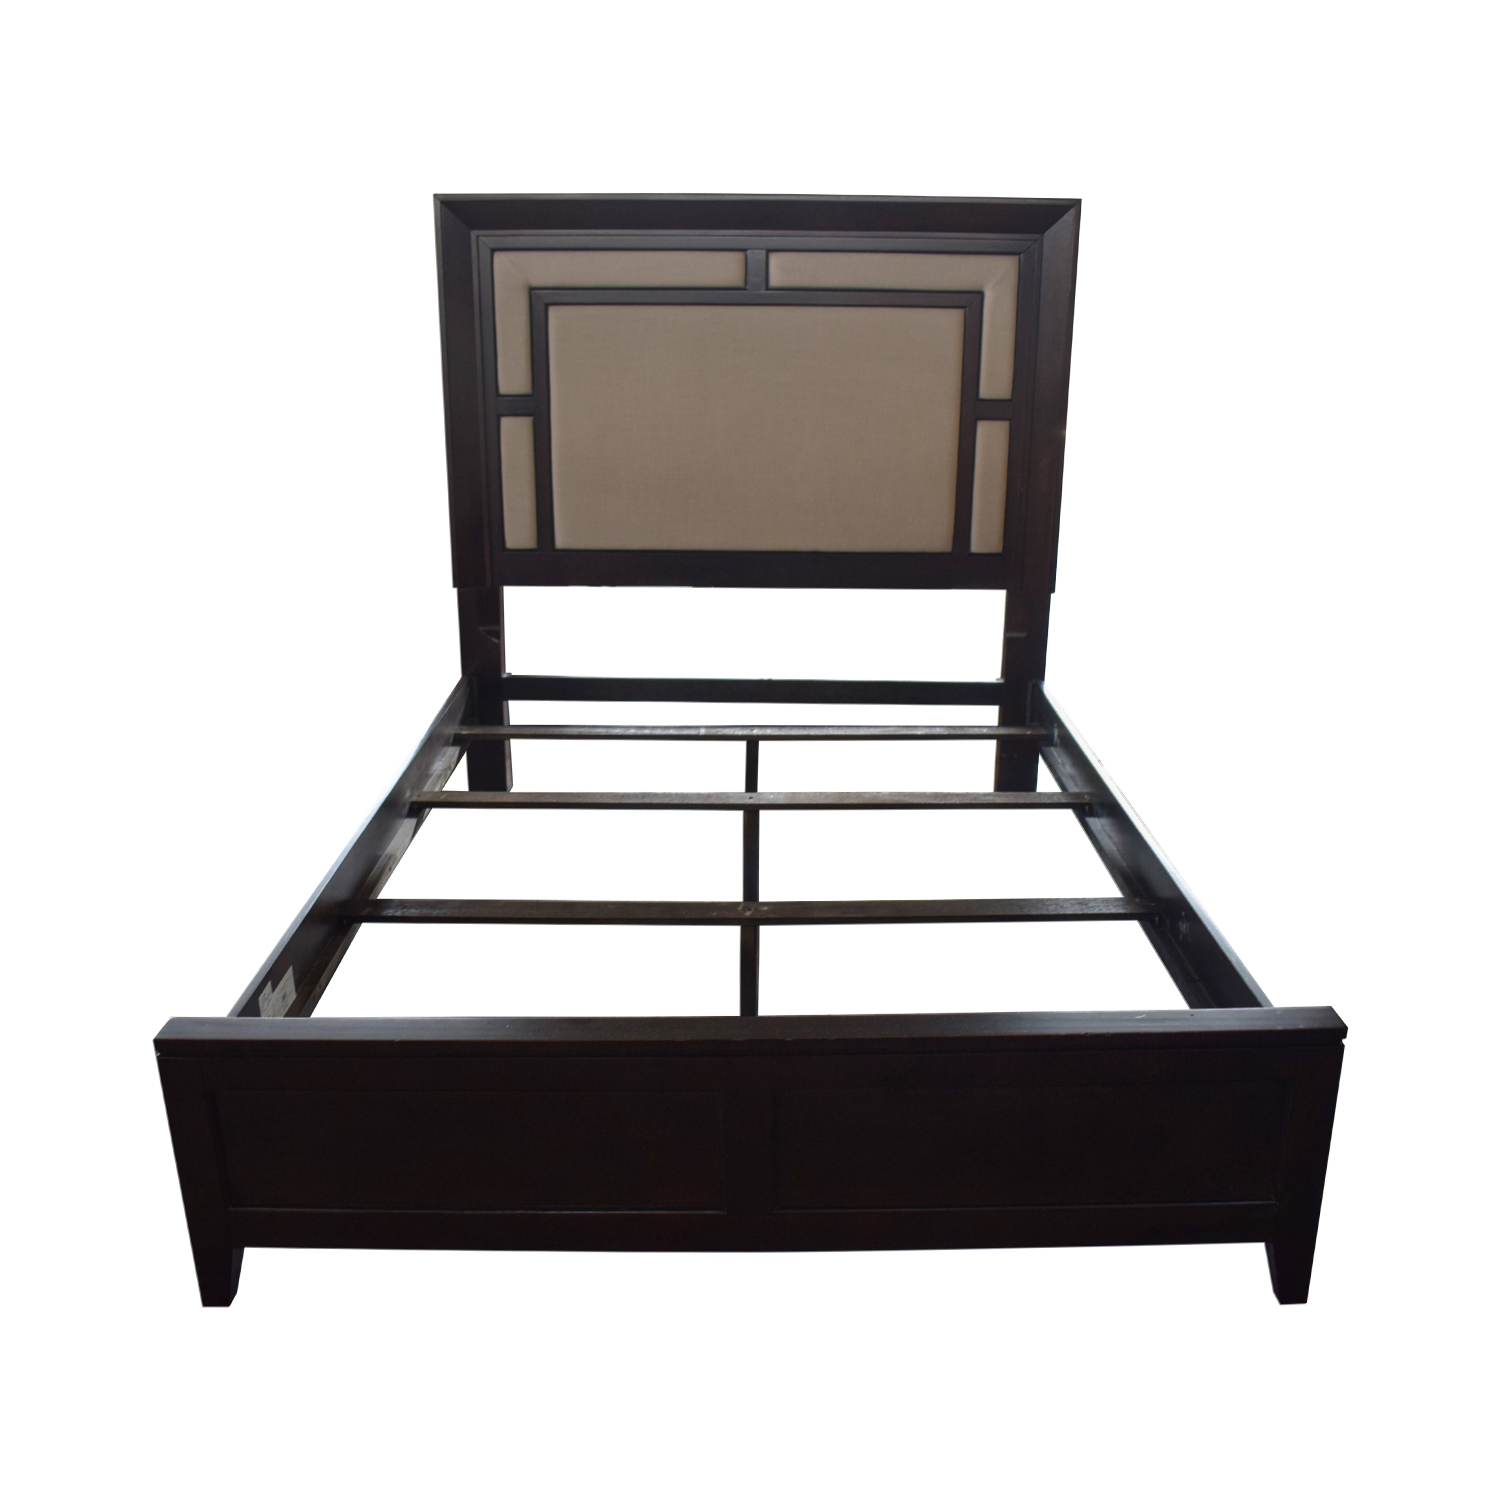 Raymour & Flanigan Raymour & Flanigan Cadence Queen Bed Frame on sale